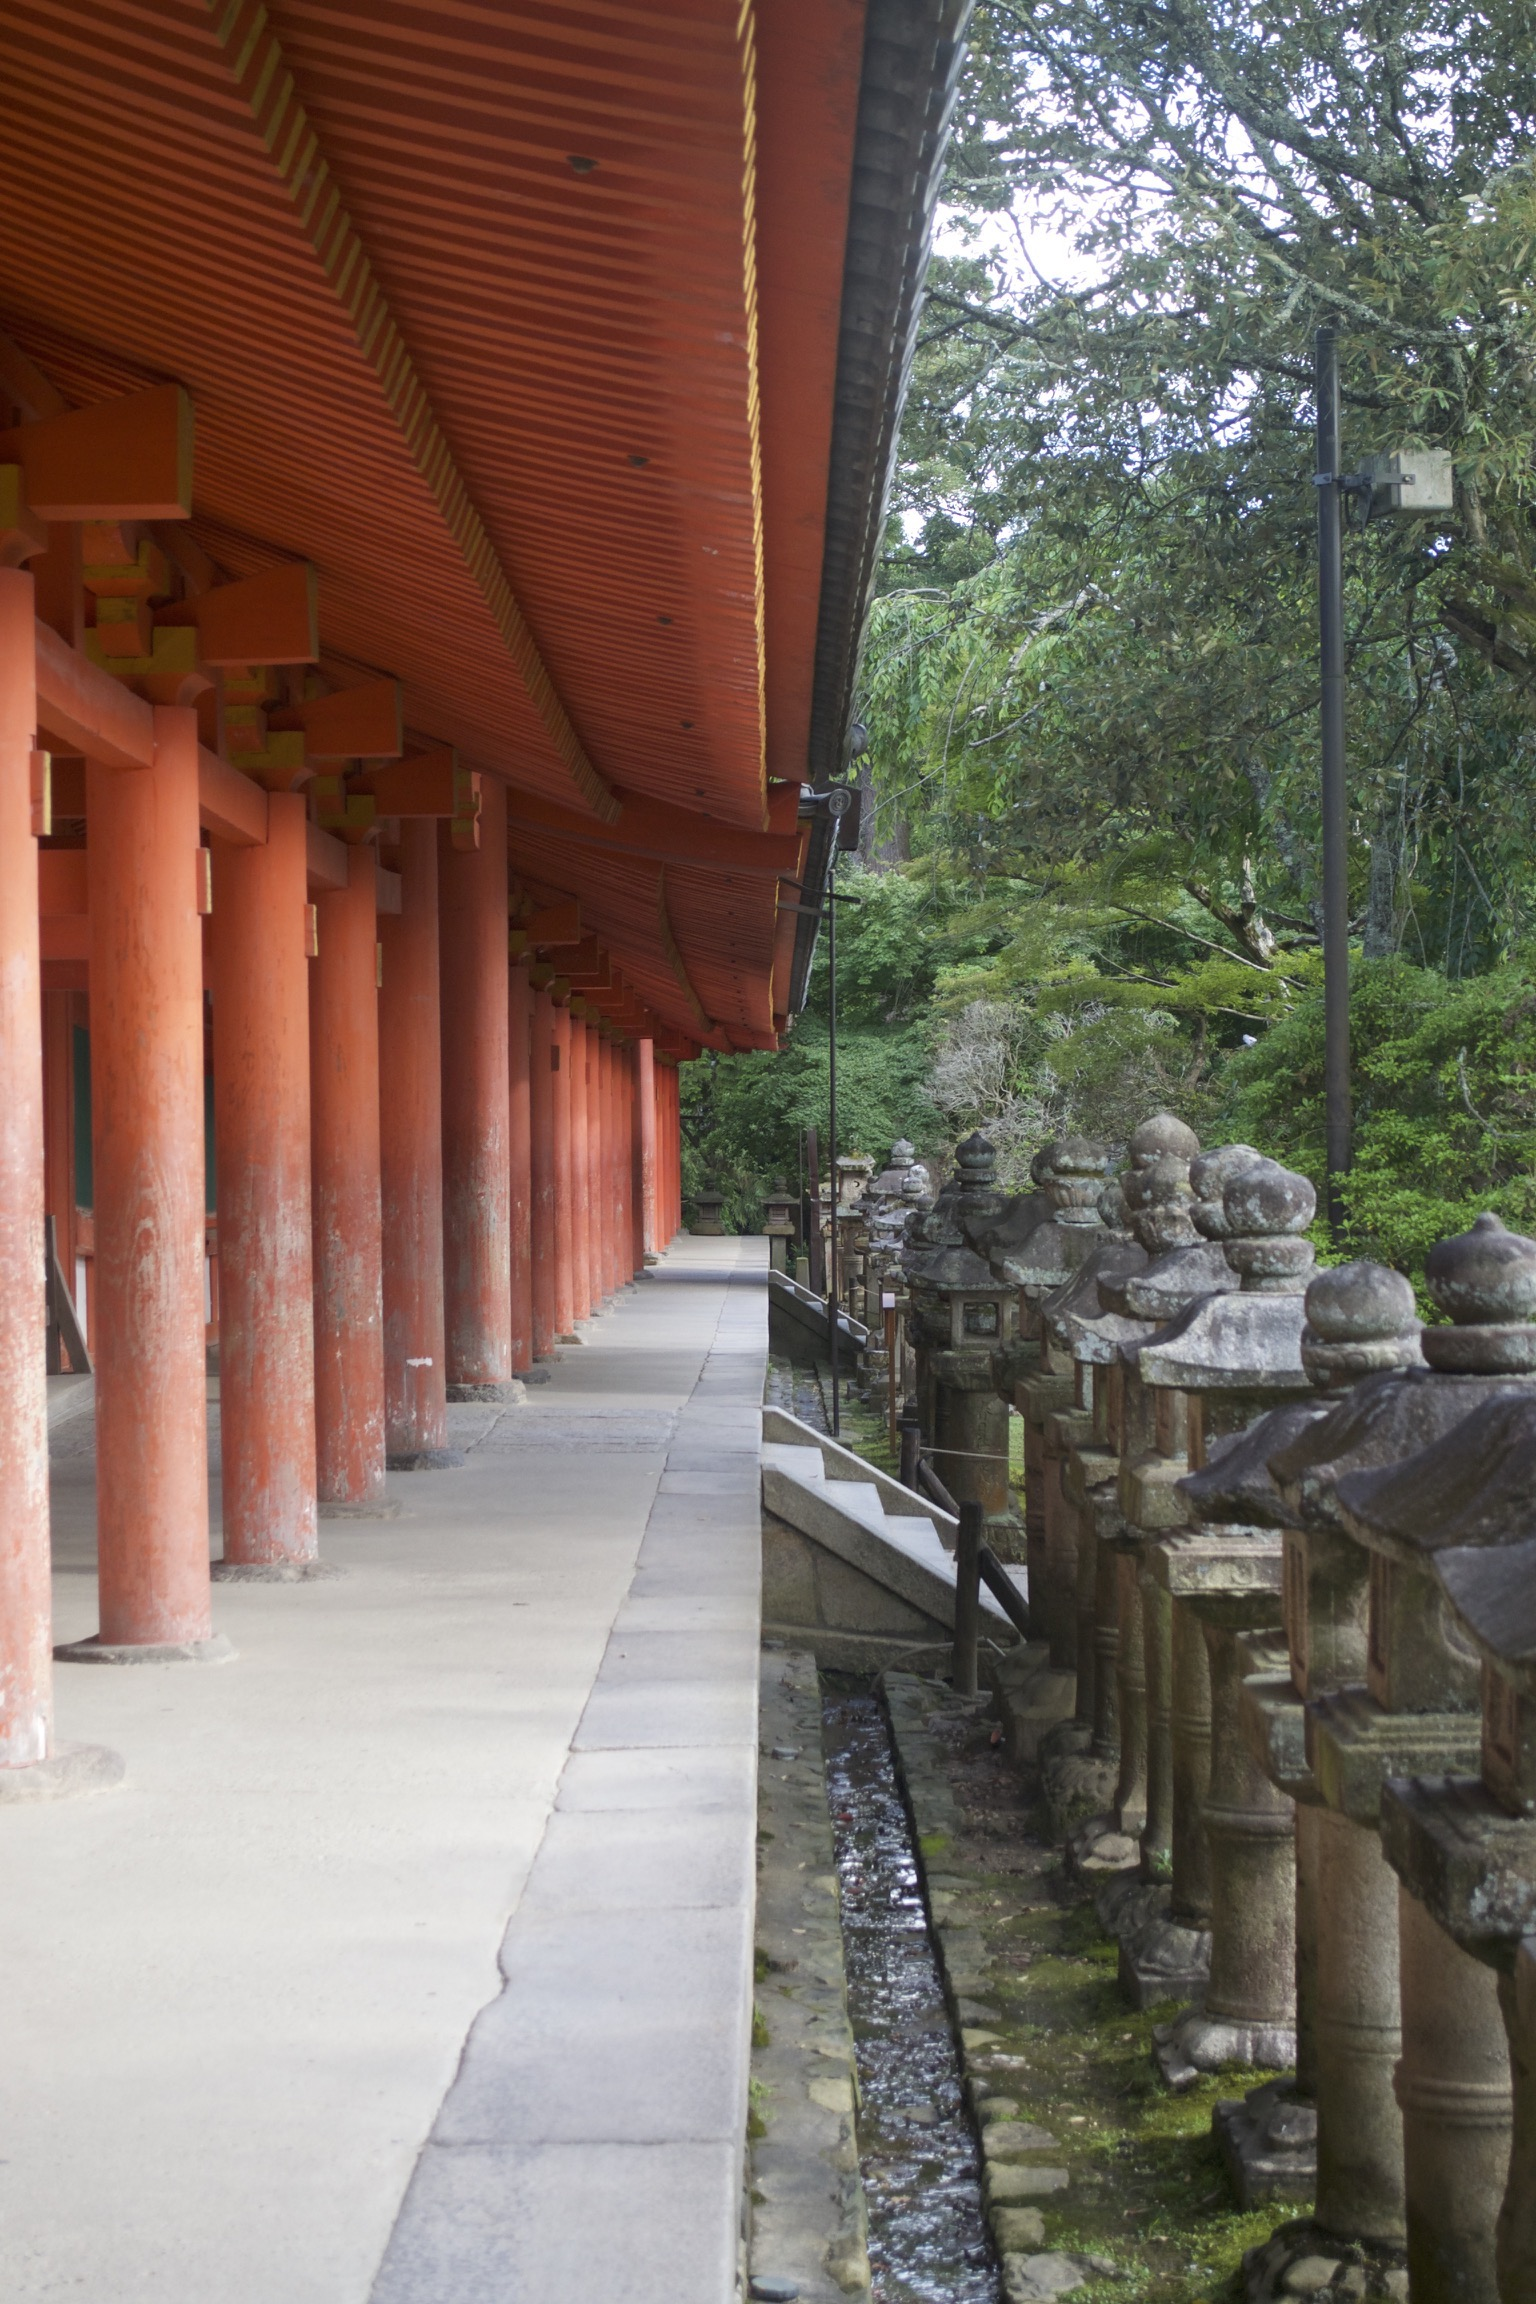 In the left half of the photograph, red wooden columns support a red roof.  In the right half stand a row of small shrines and trees.